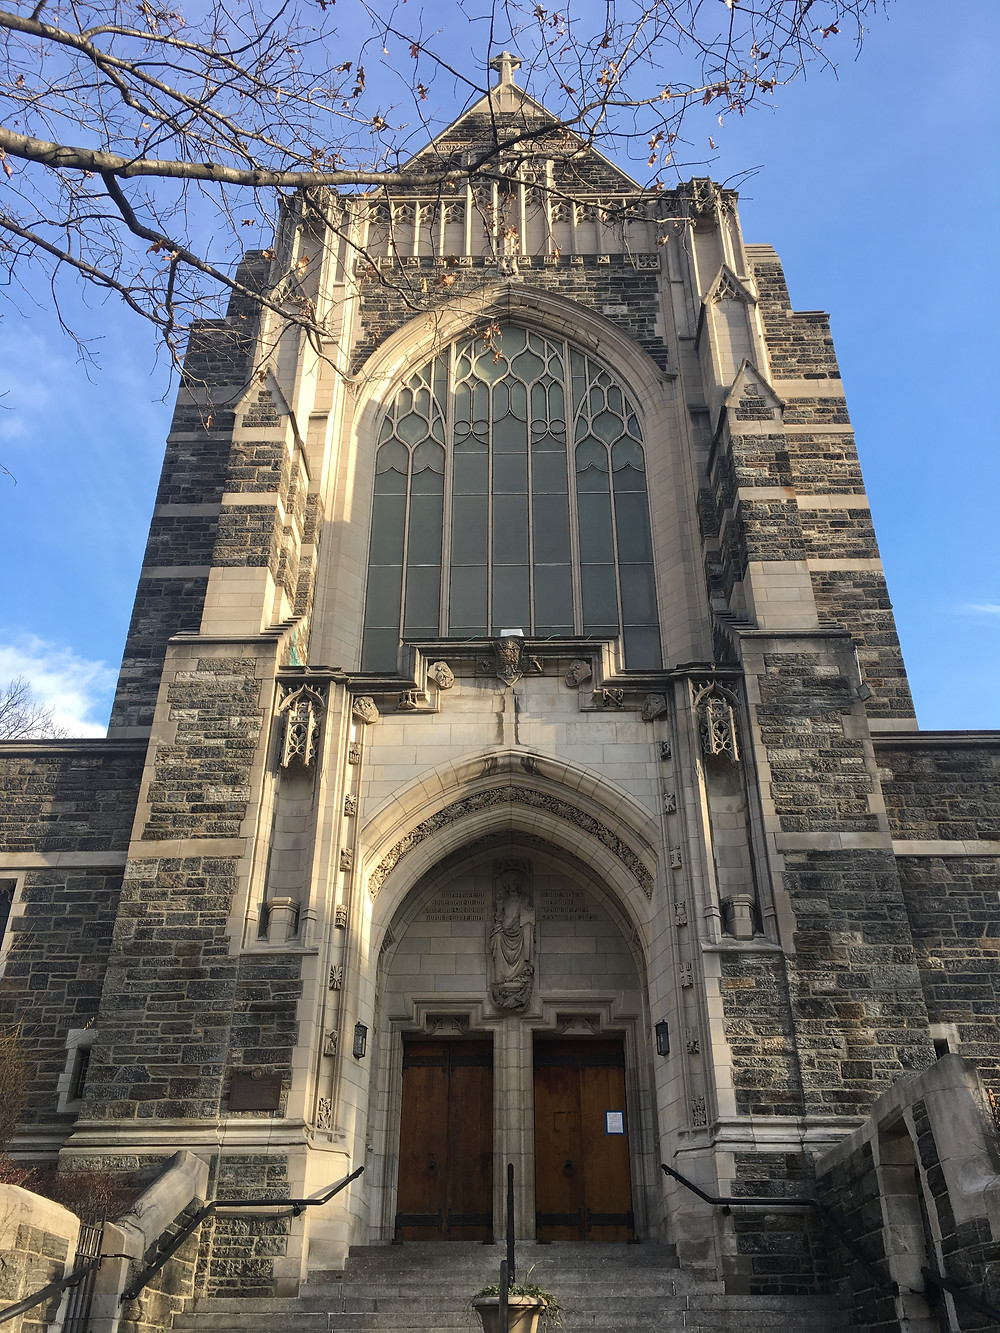 The Church of the Intercession in Harlem